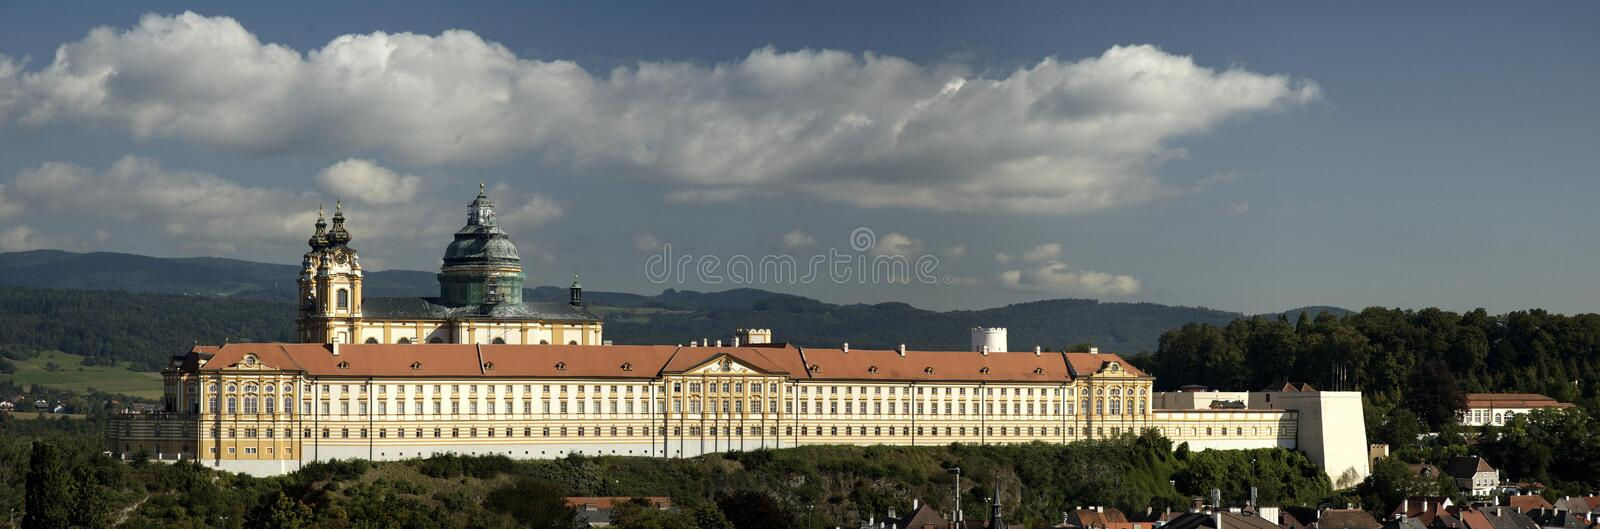 Castle Melk in Austria stock photography